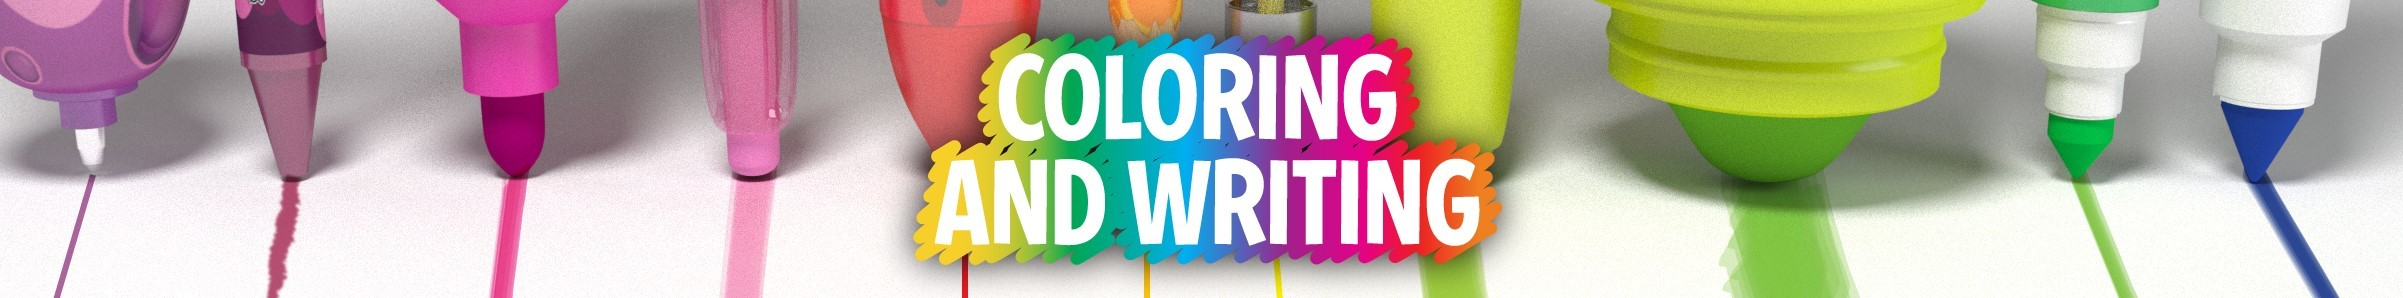 Coloring & Writing